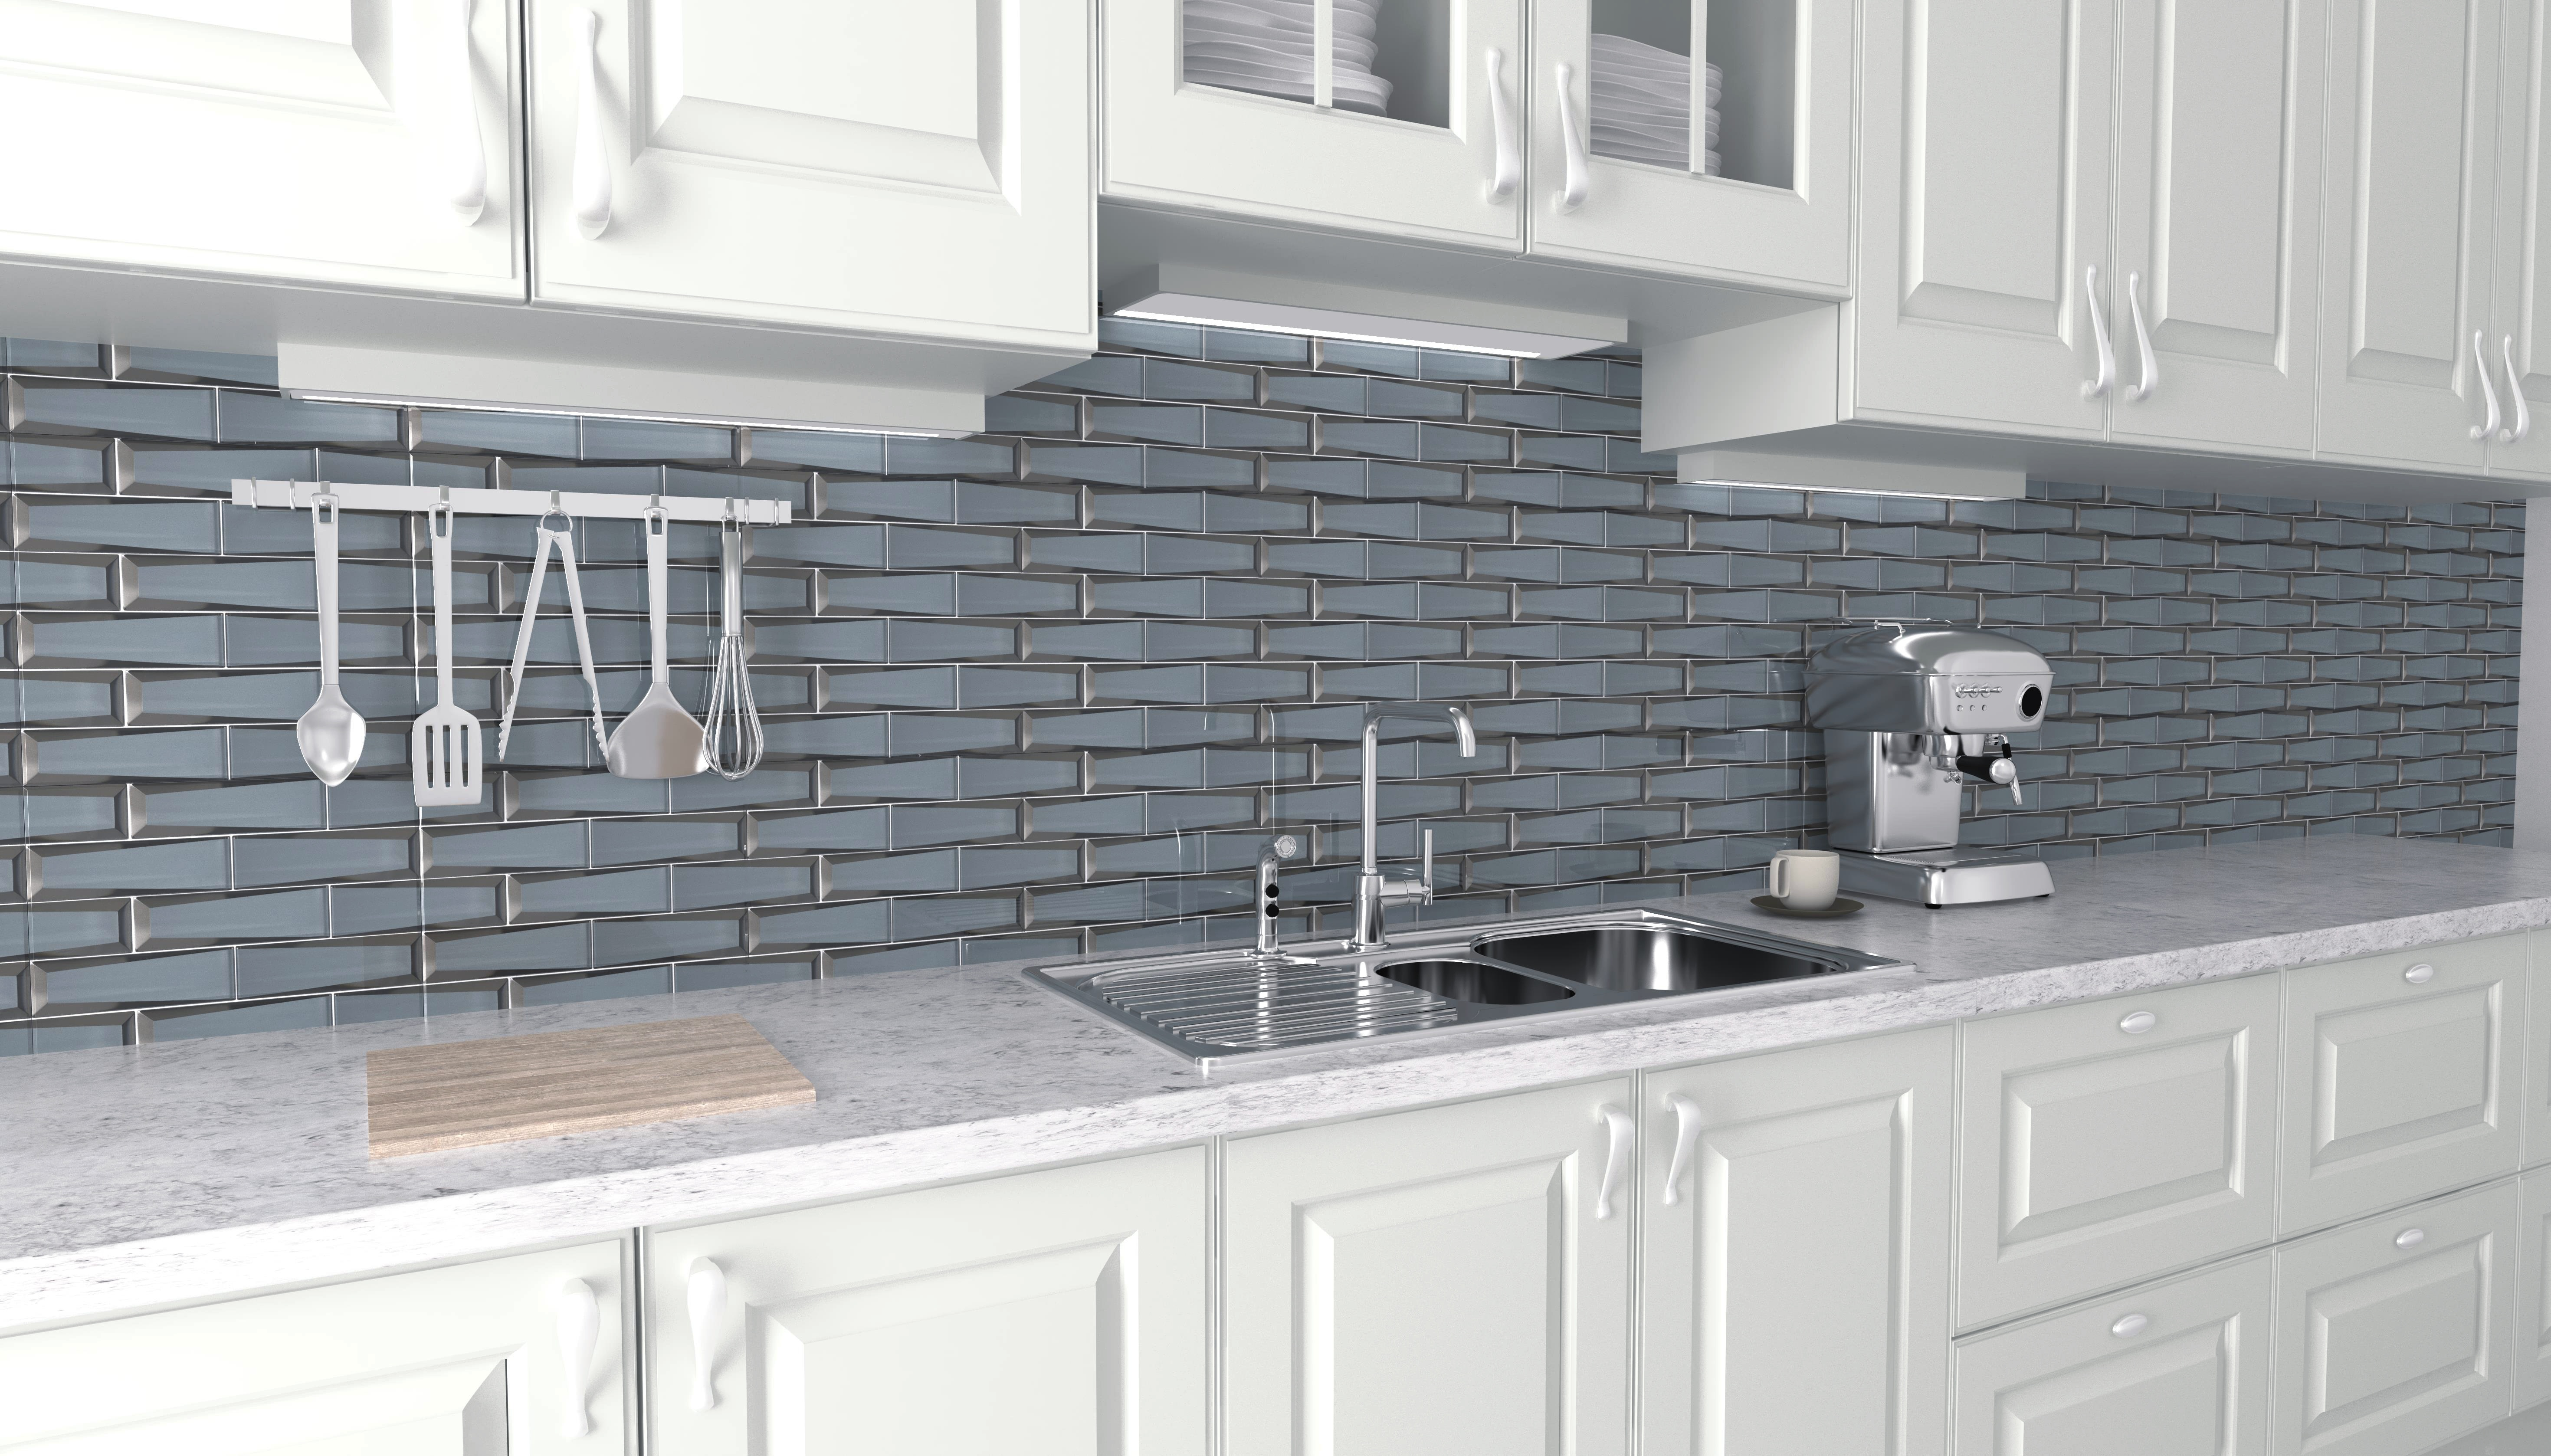 - Beveled Glass Tile Backsplash To Add Style And Interest To Your Space